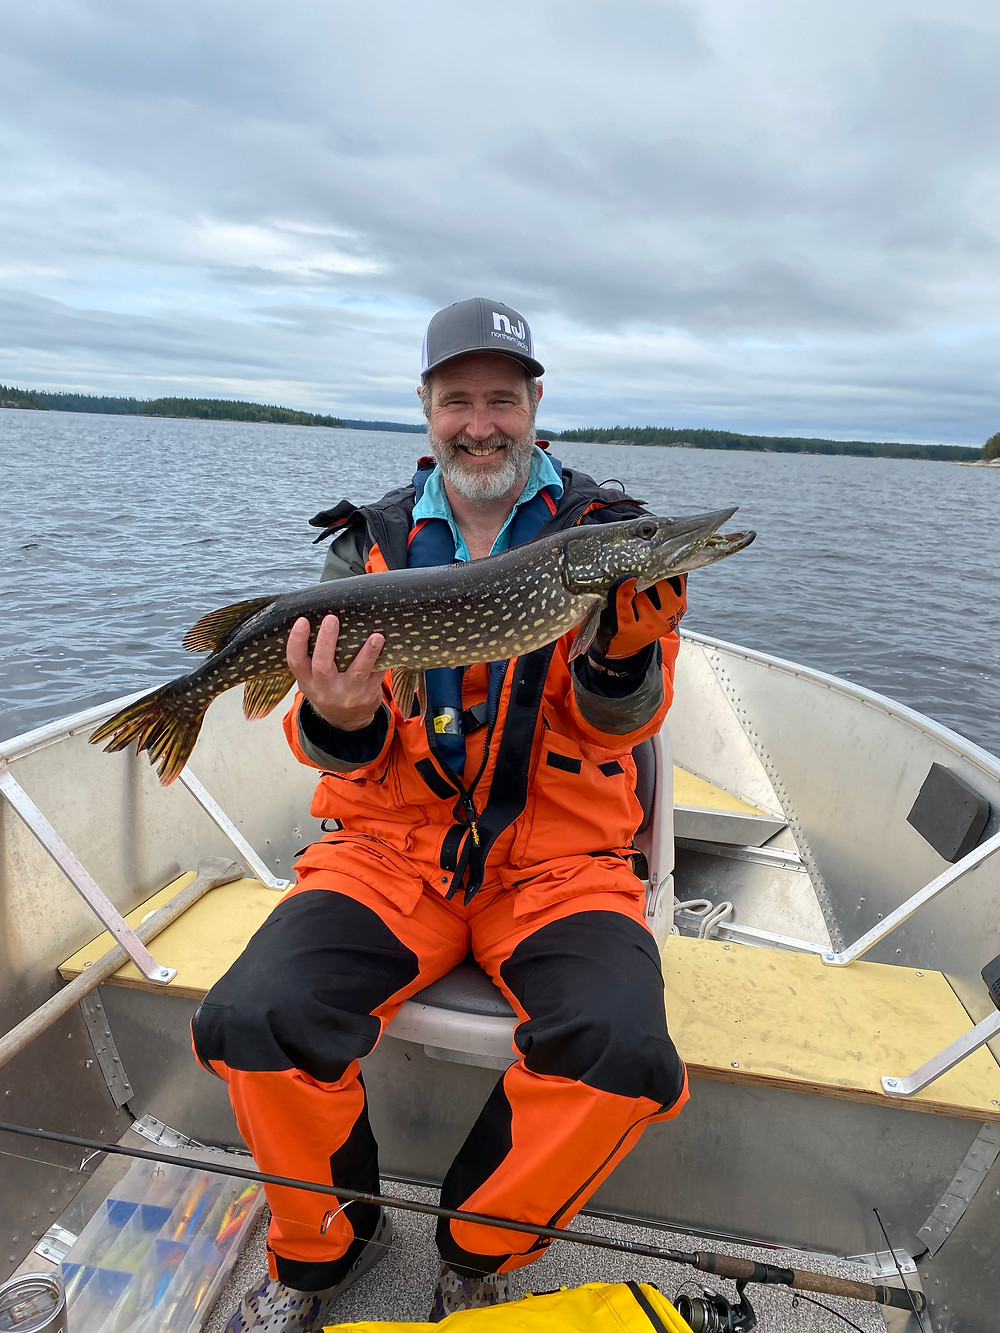 Nice pike caught on a fly in fishing trip in Northern Ontario, Canada